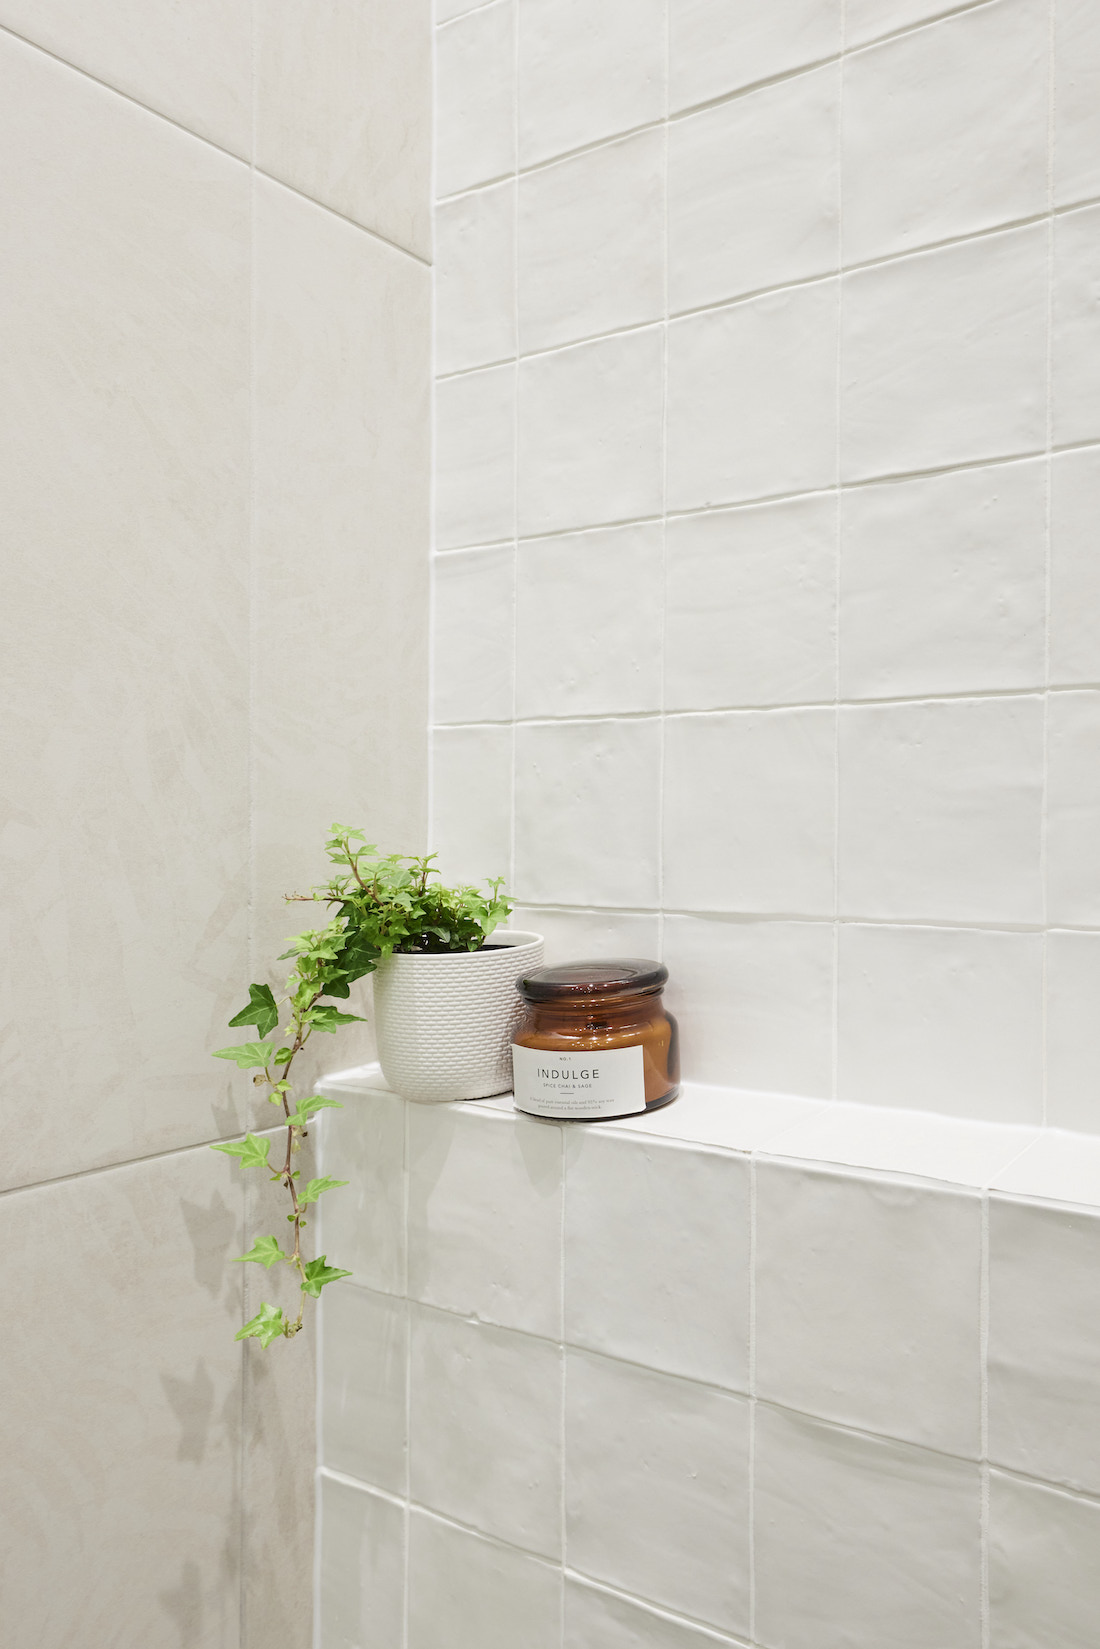 White shelf in shower with trailing plant